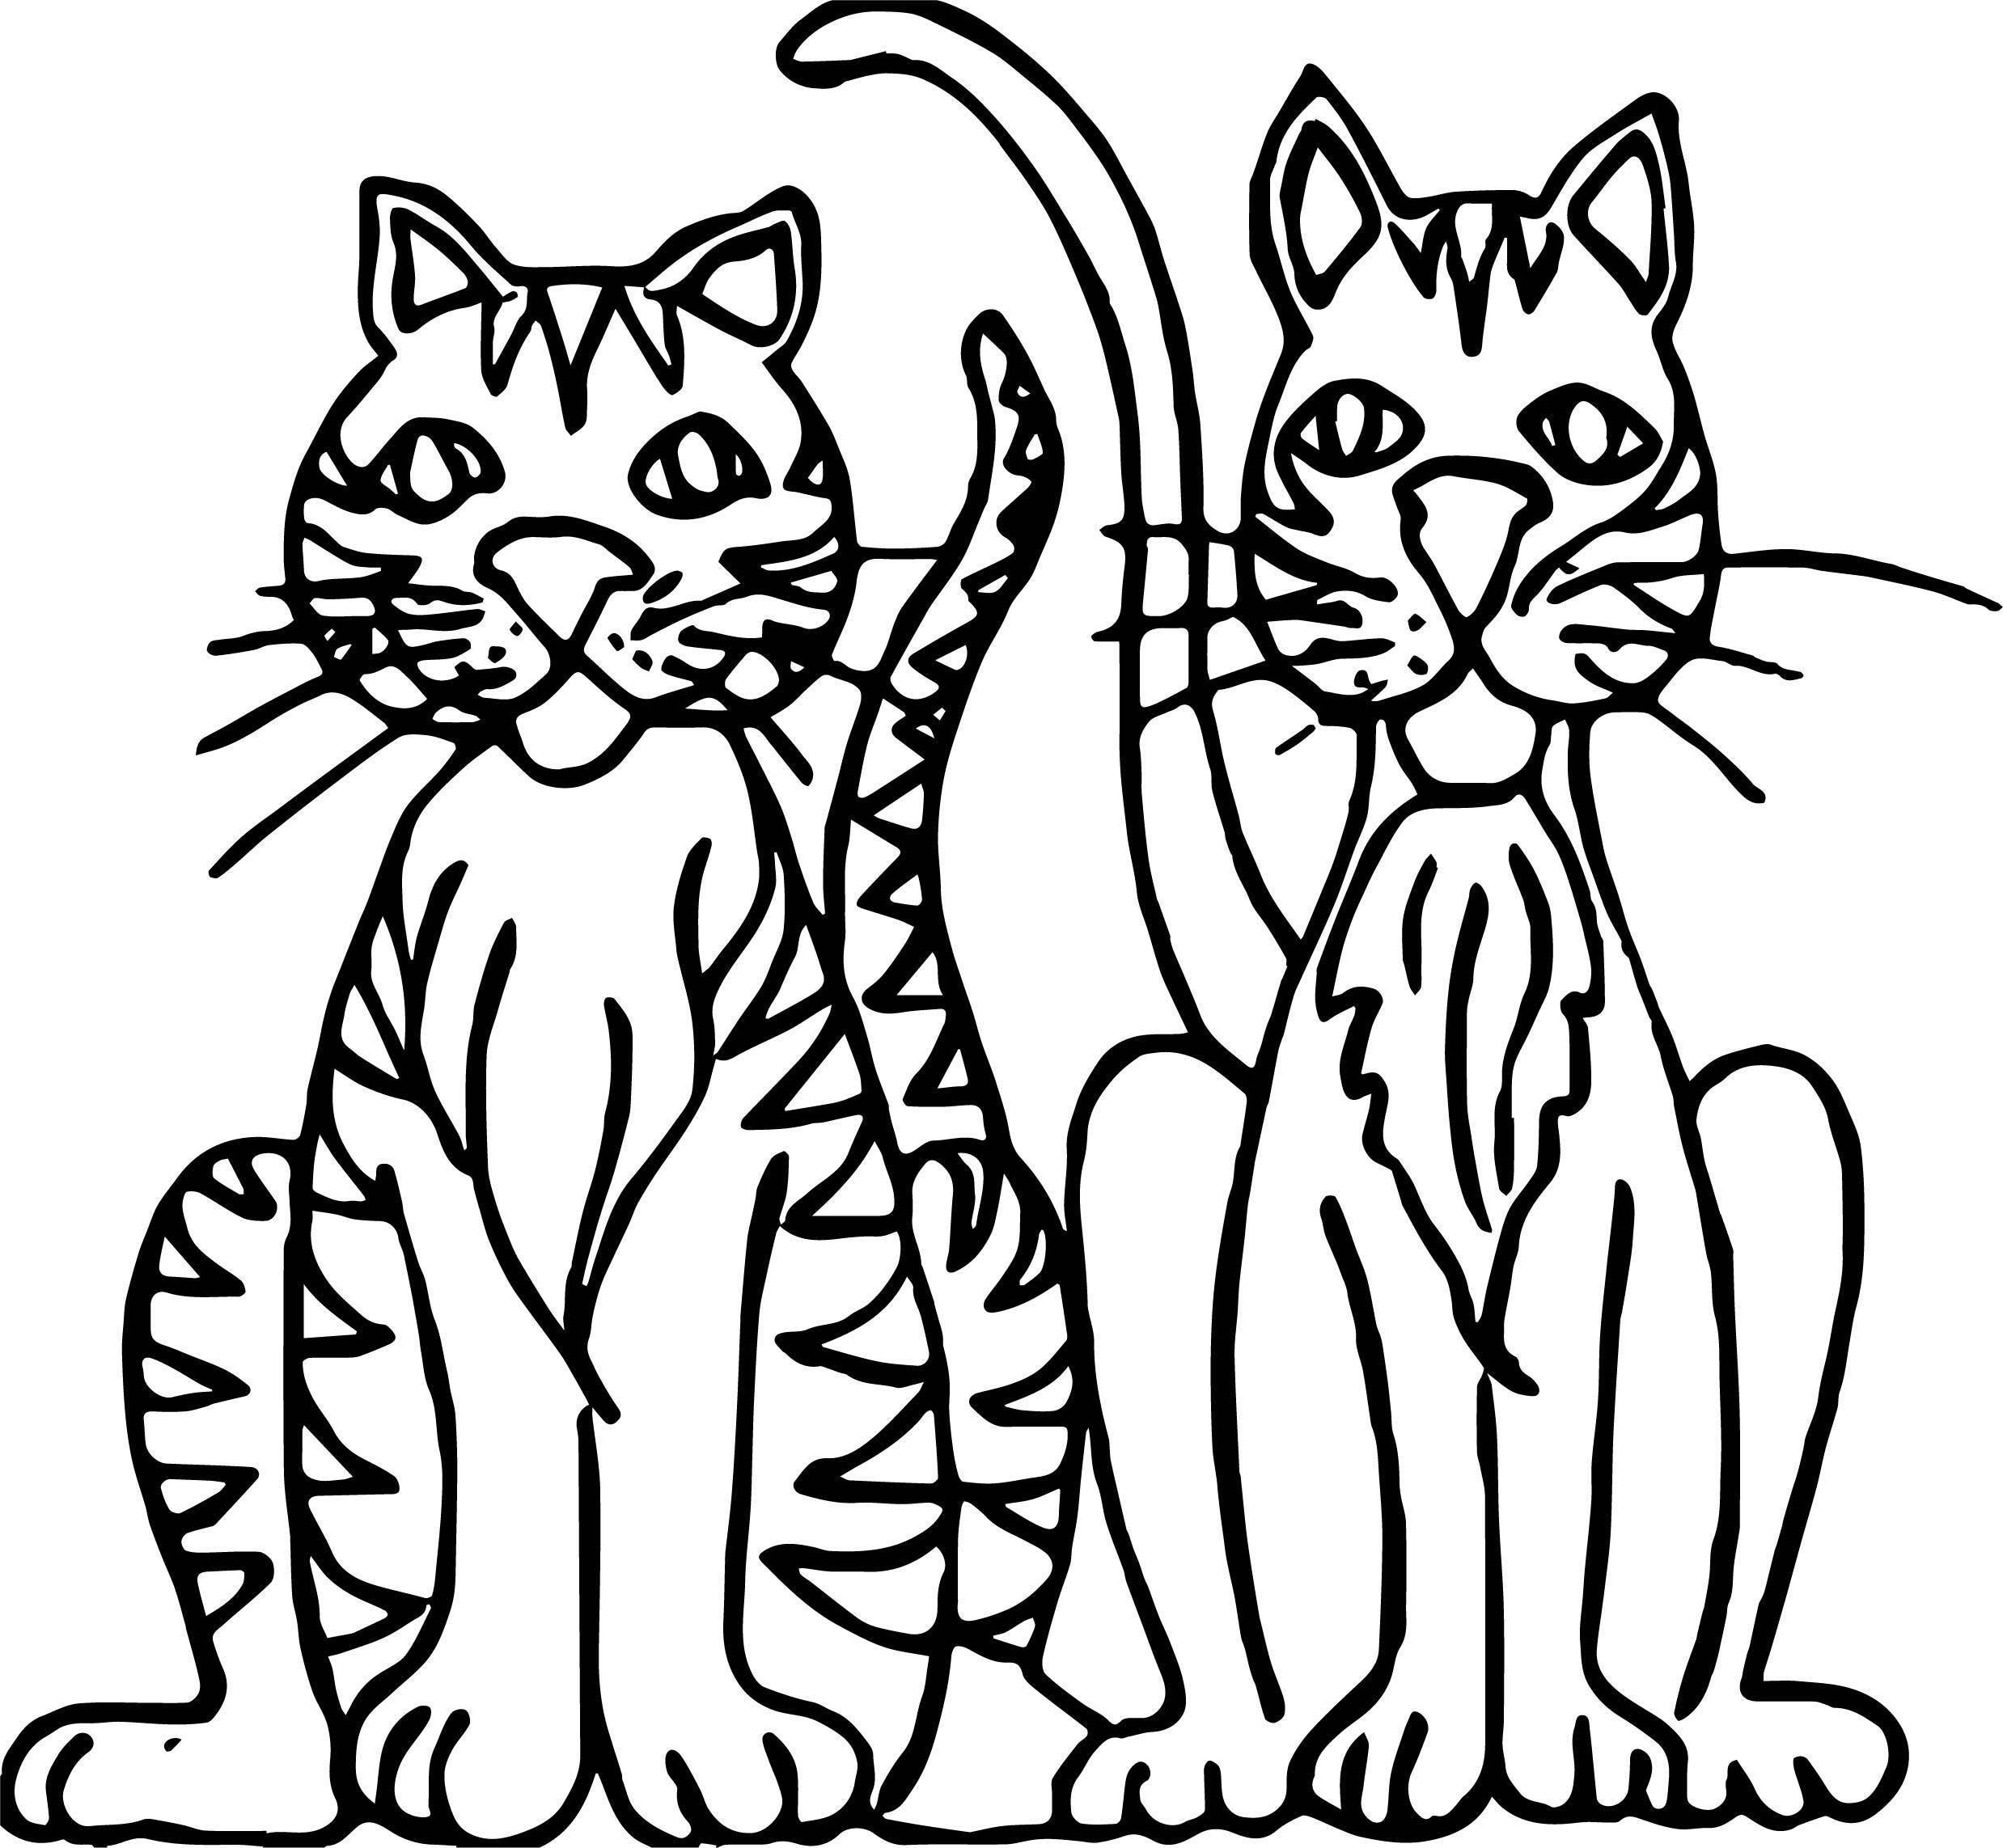 Each Cat Coloring Page